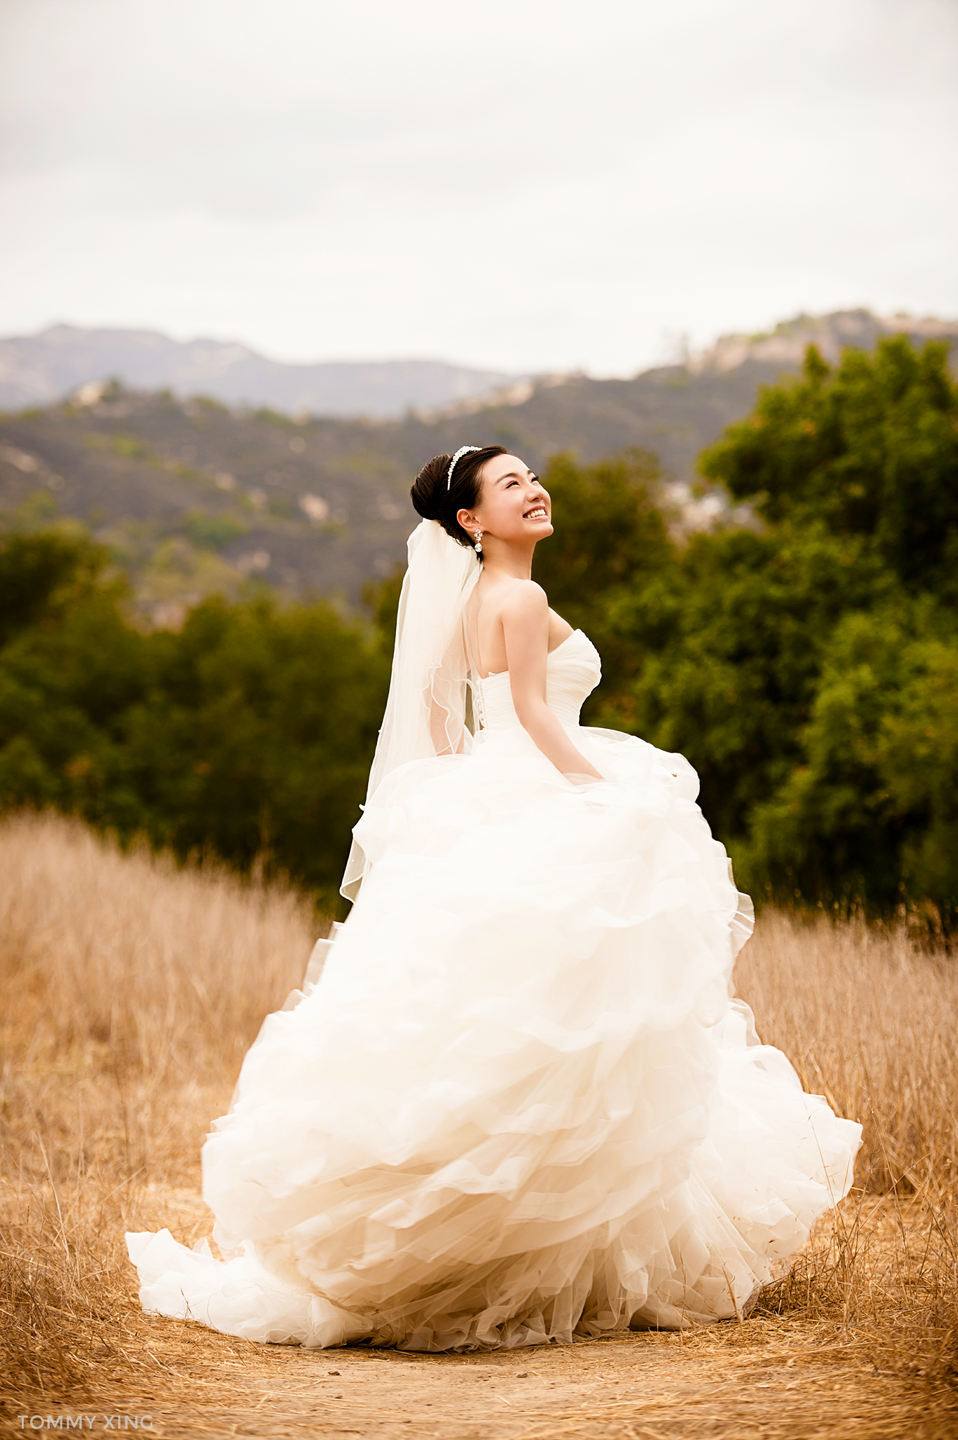 Los Angeles Wedding 洛杉矶婚纱照 Tommy Xing Photography 04.jpg